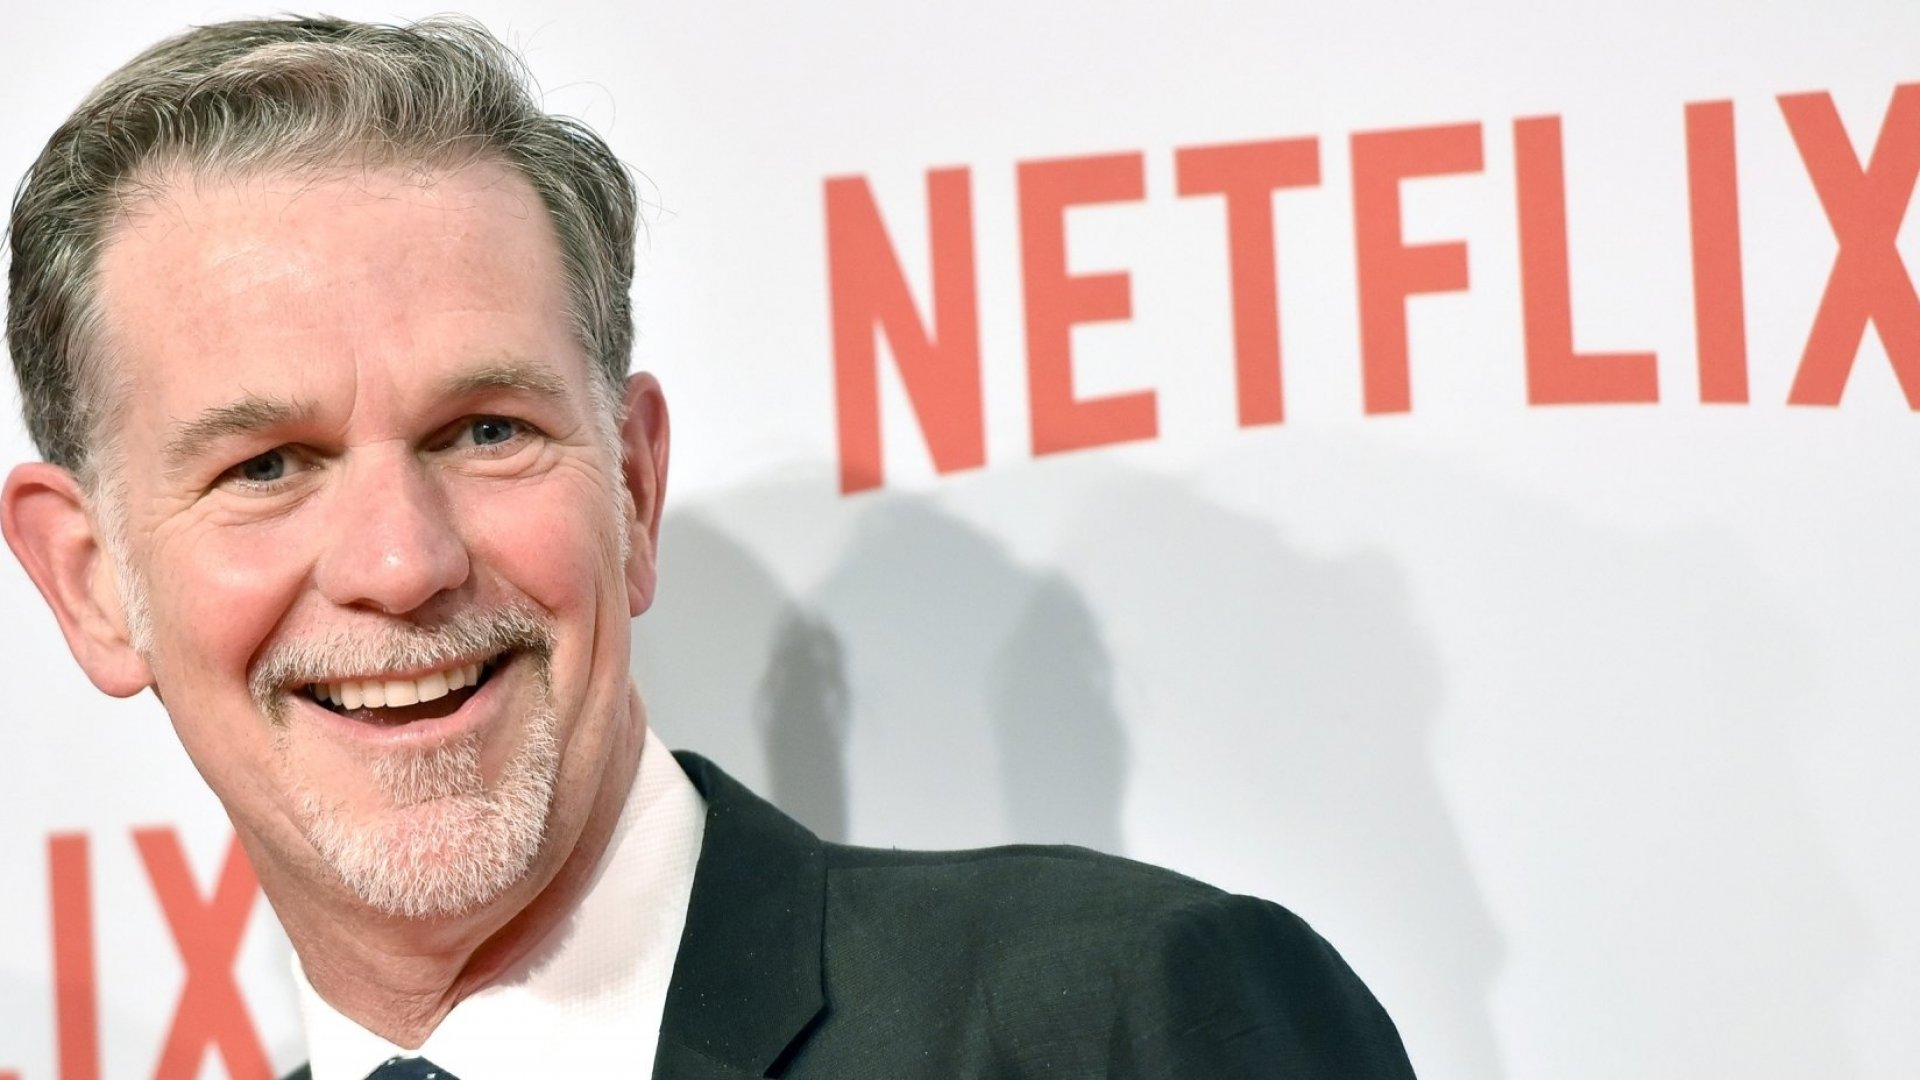 Co-founder and CEO of Netflix Reed Hastings